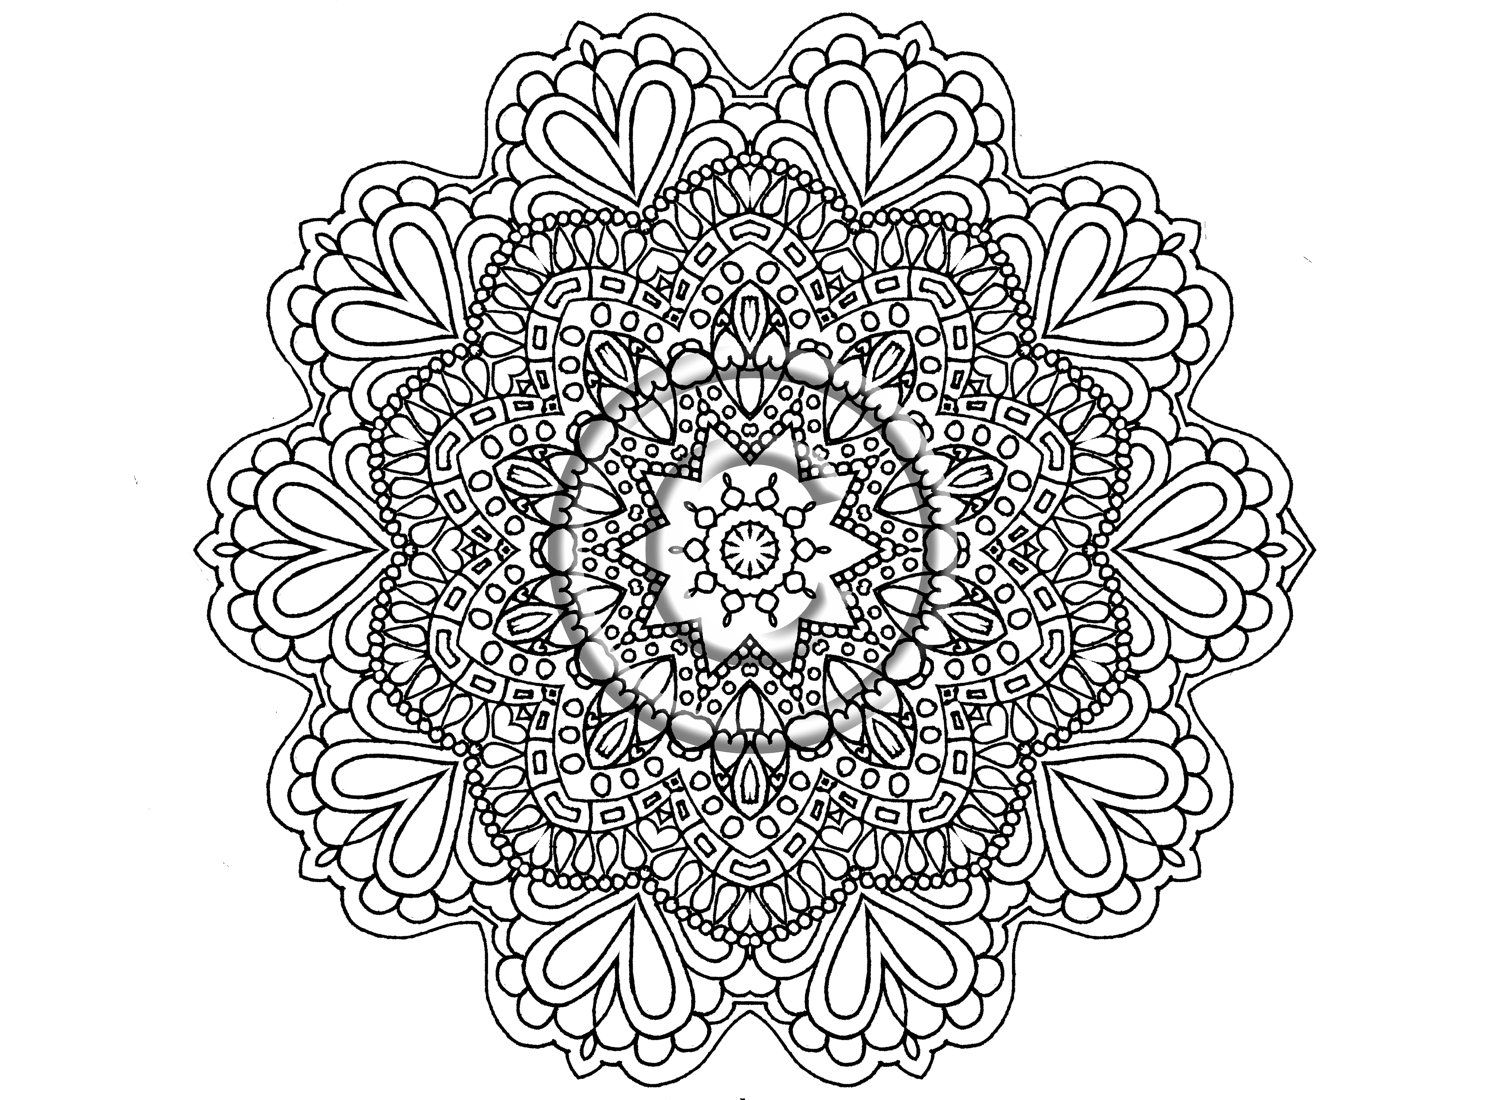 zentangle coloring pages free printable adult zentangle by cathym 2 coloring pages printable free pages zentangle coloring printable